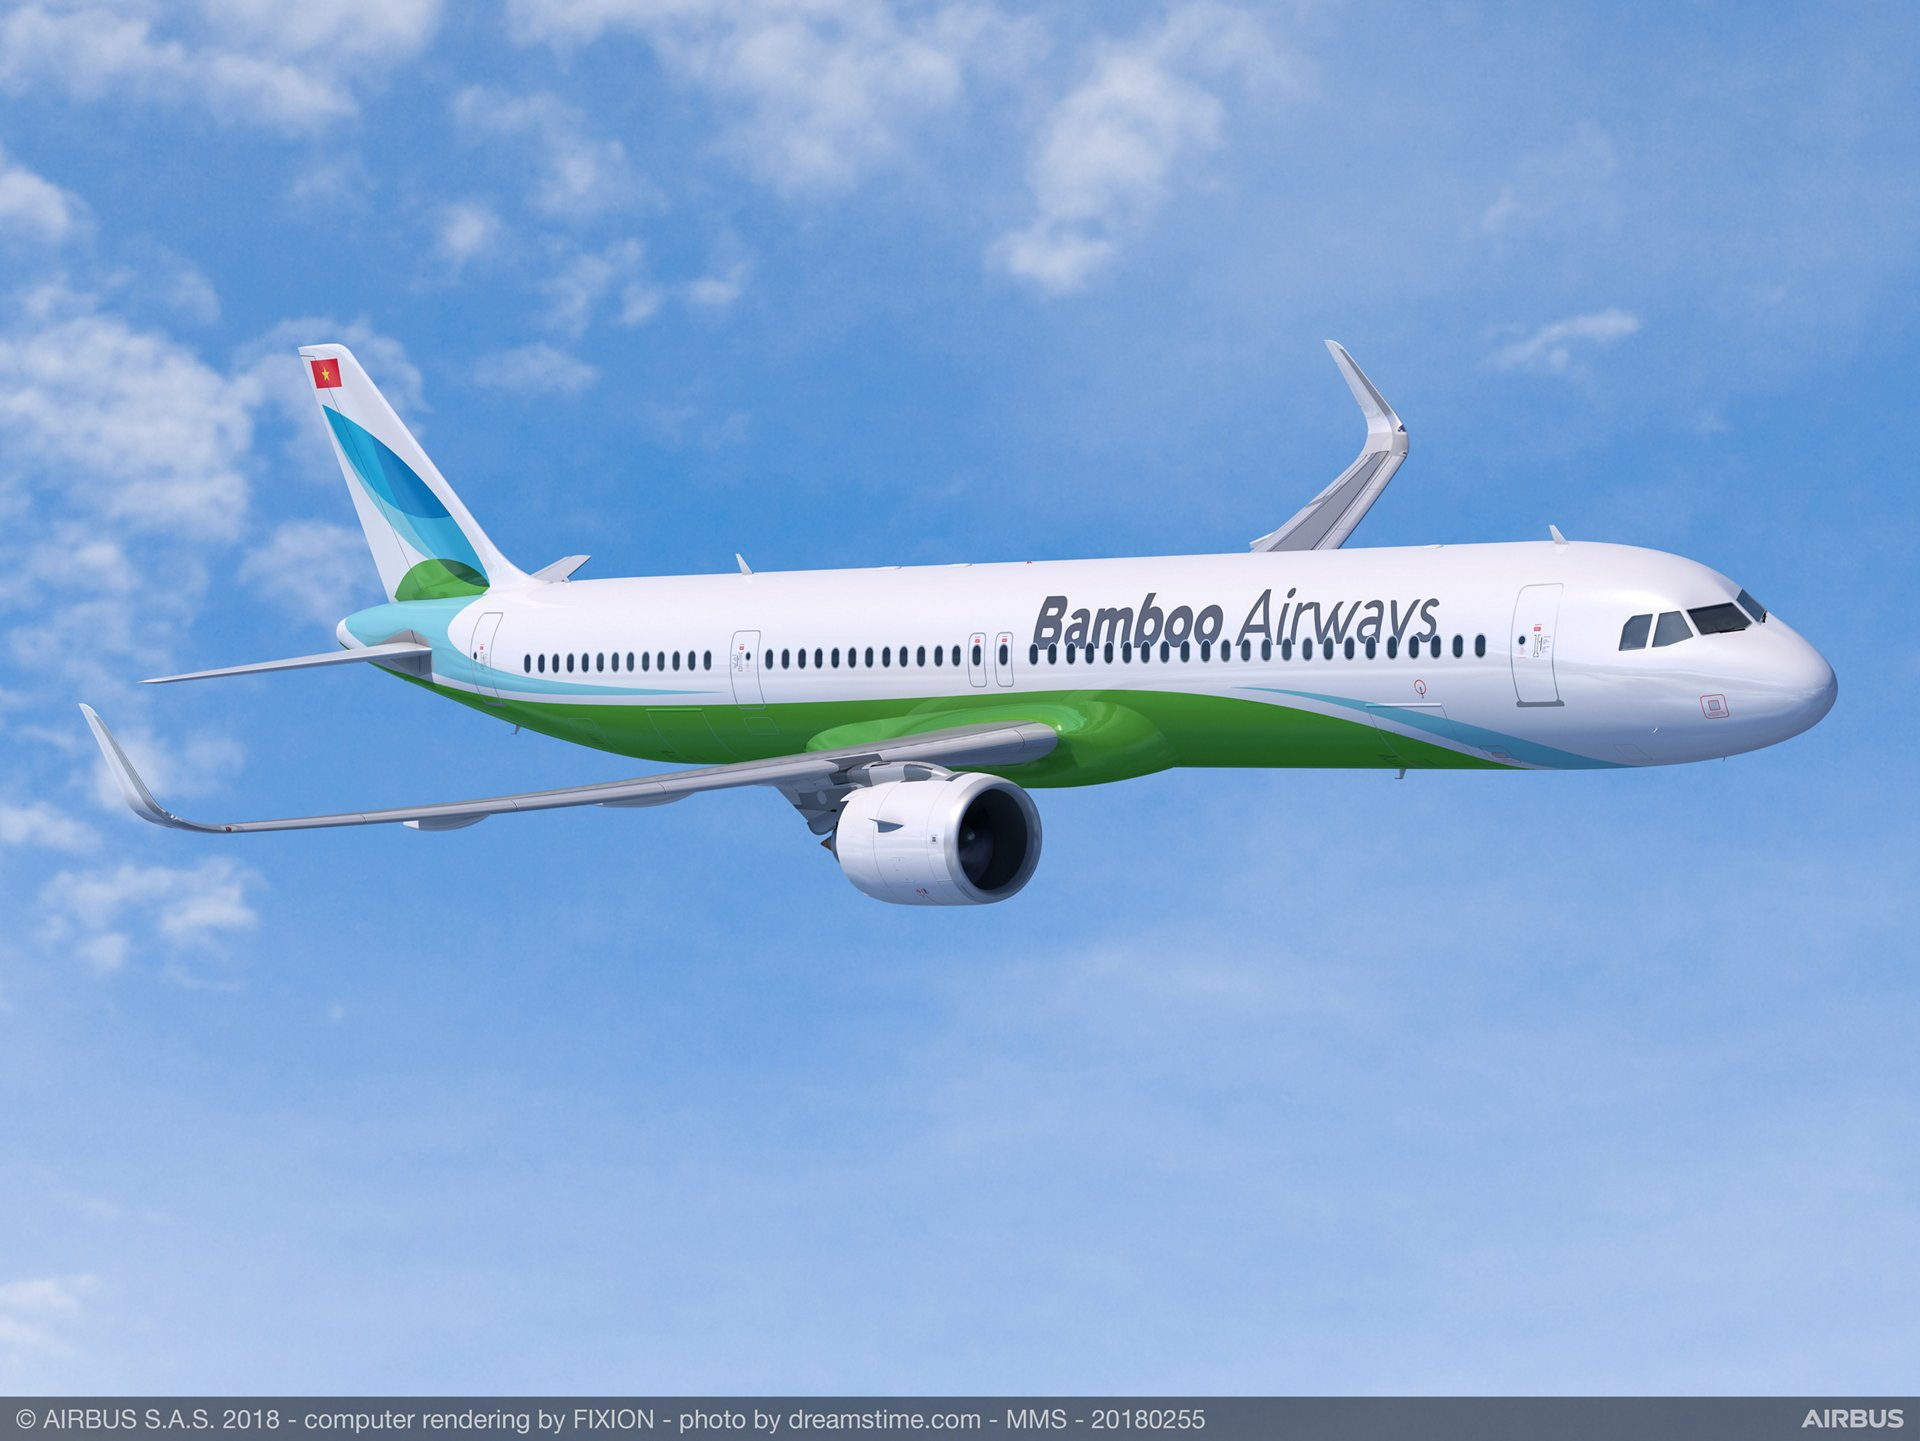 FLC Group selects A321neo jetliners for Bamboo Airways